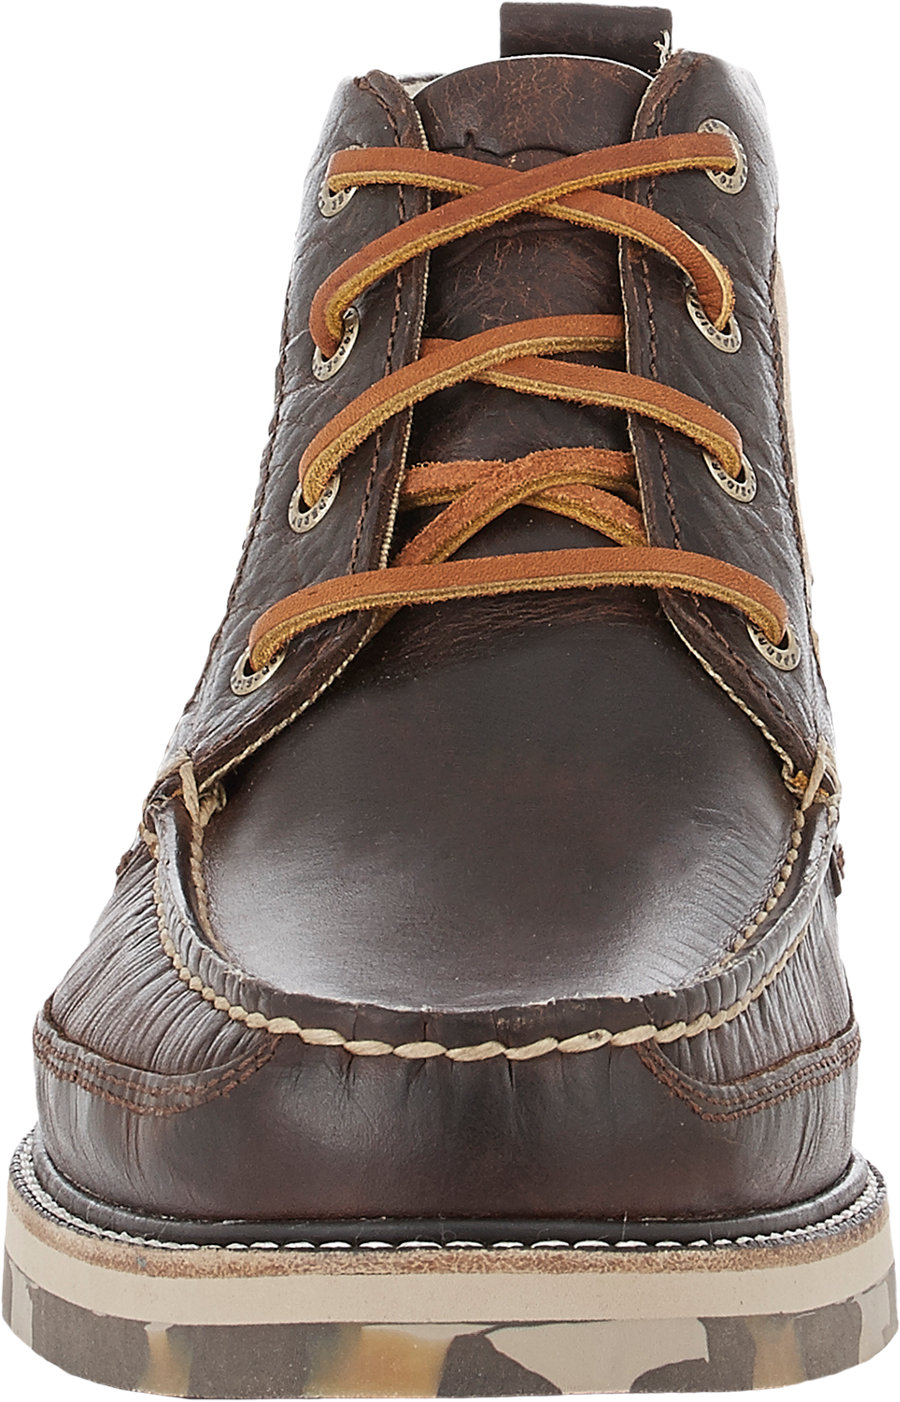 Perfect MENS SPERRY BILLFISH UL CHUKKA BROWN ULTRALITE NUBUCK LEATHER LACE UP BOOTS SIZE | EBay